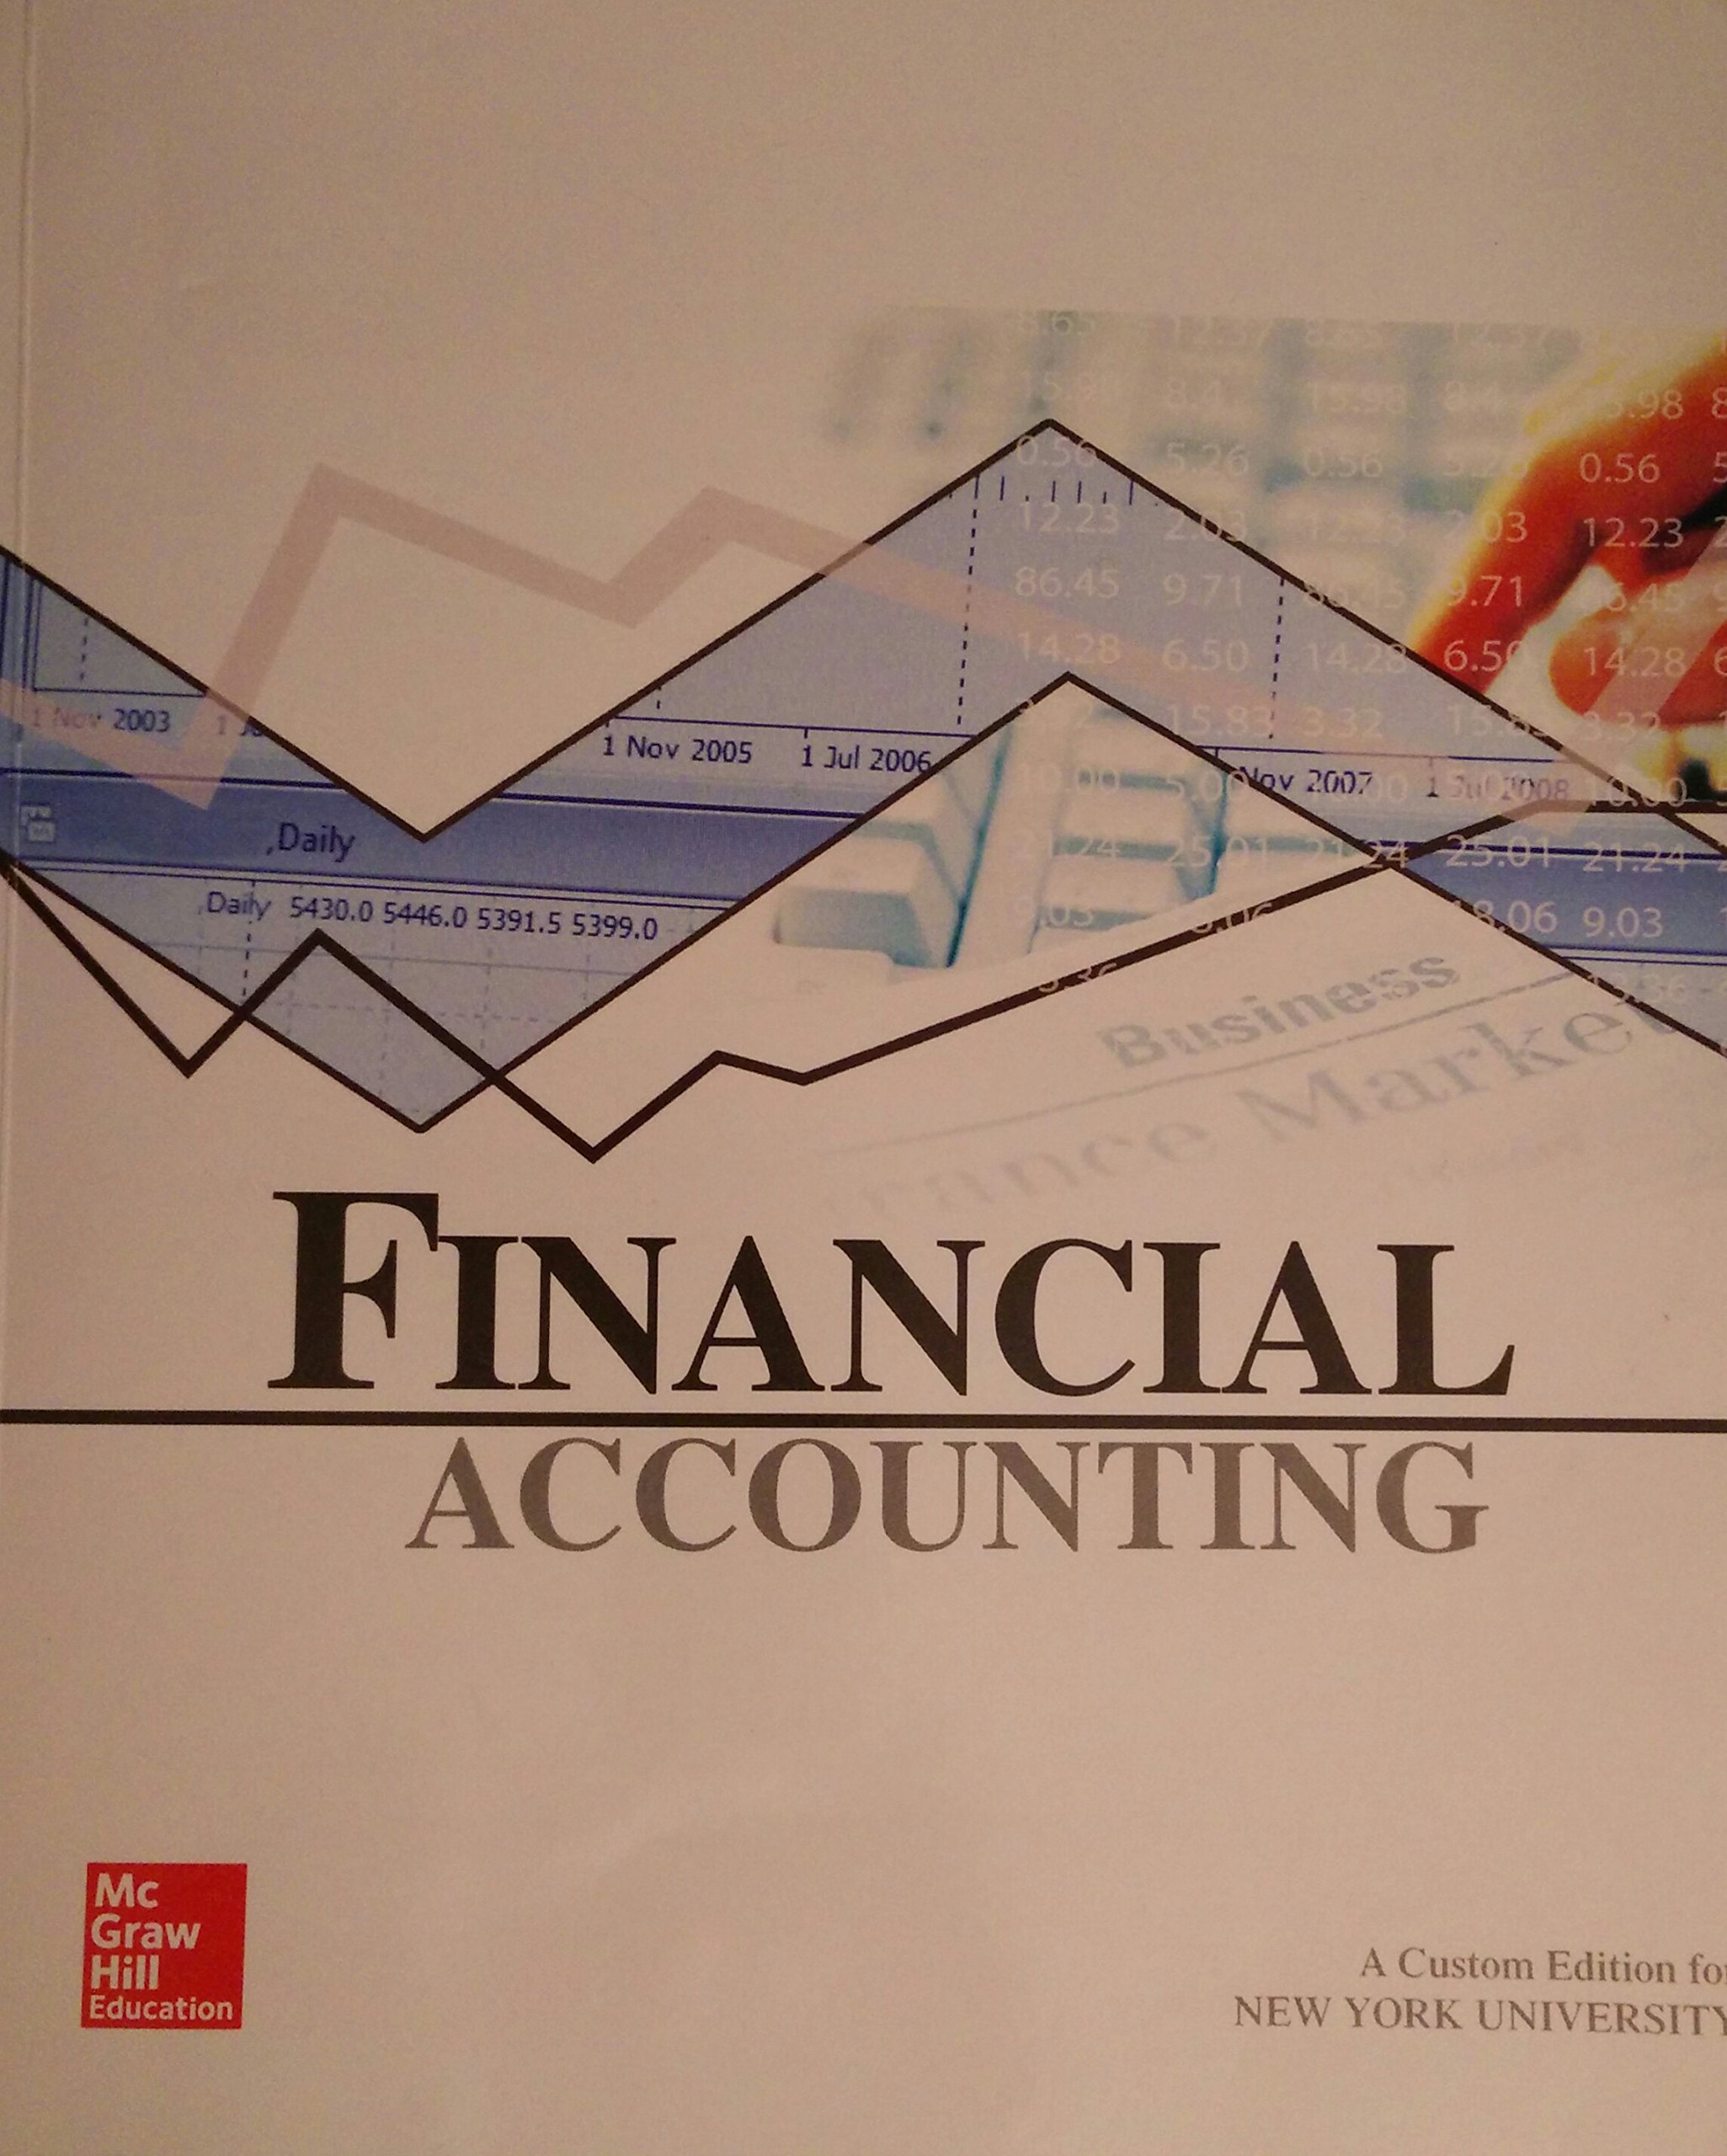 Financial accounting nyu edition robert libby patricia a libby financial accounting nyu edition robert libby patricia a libby daniel g short 9781259313431 amazon books fandeluxe Choice Image